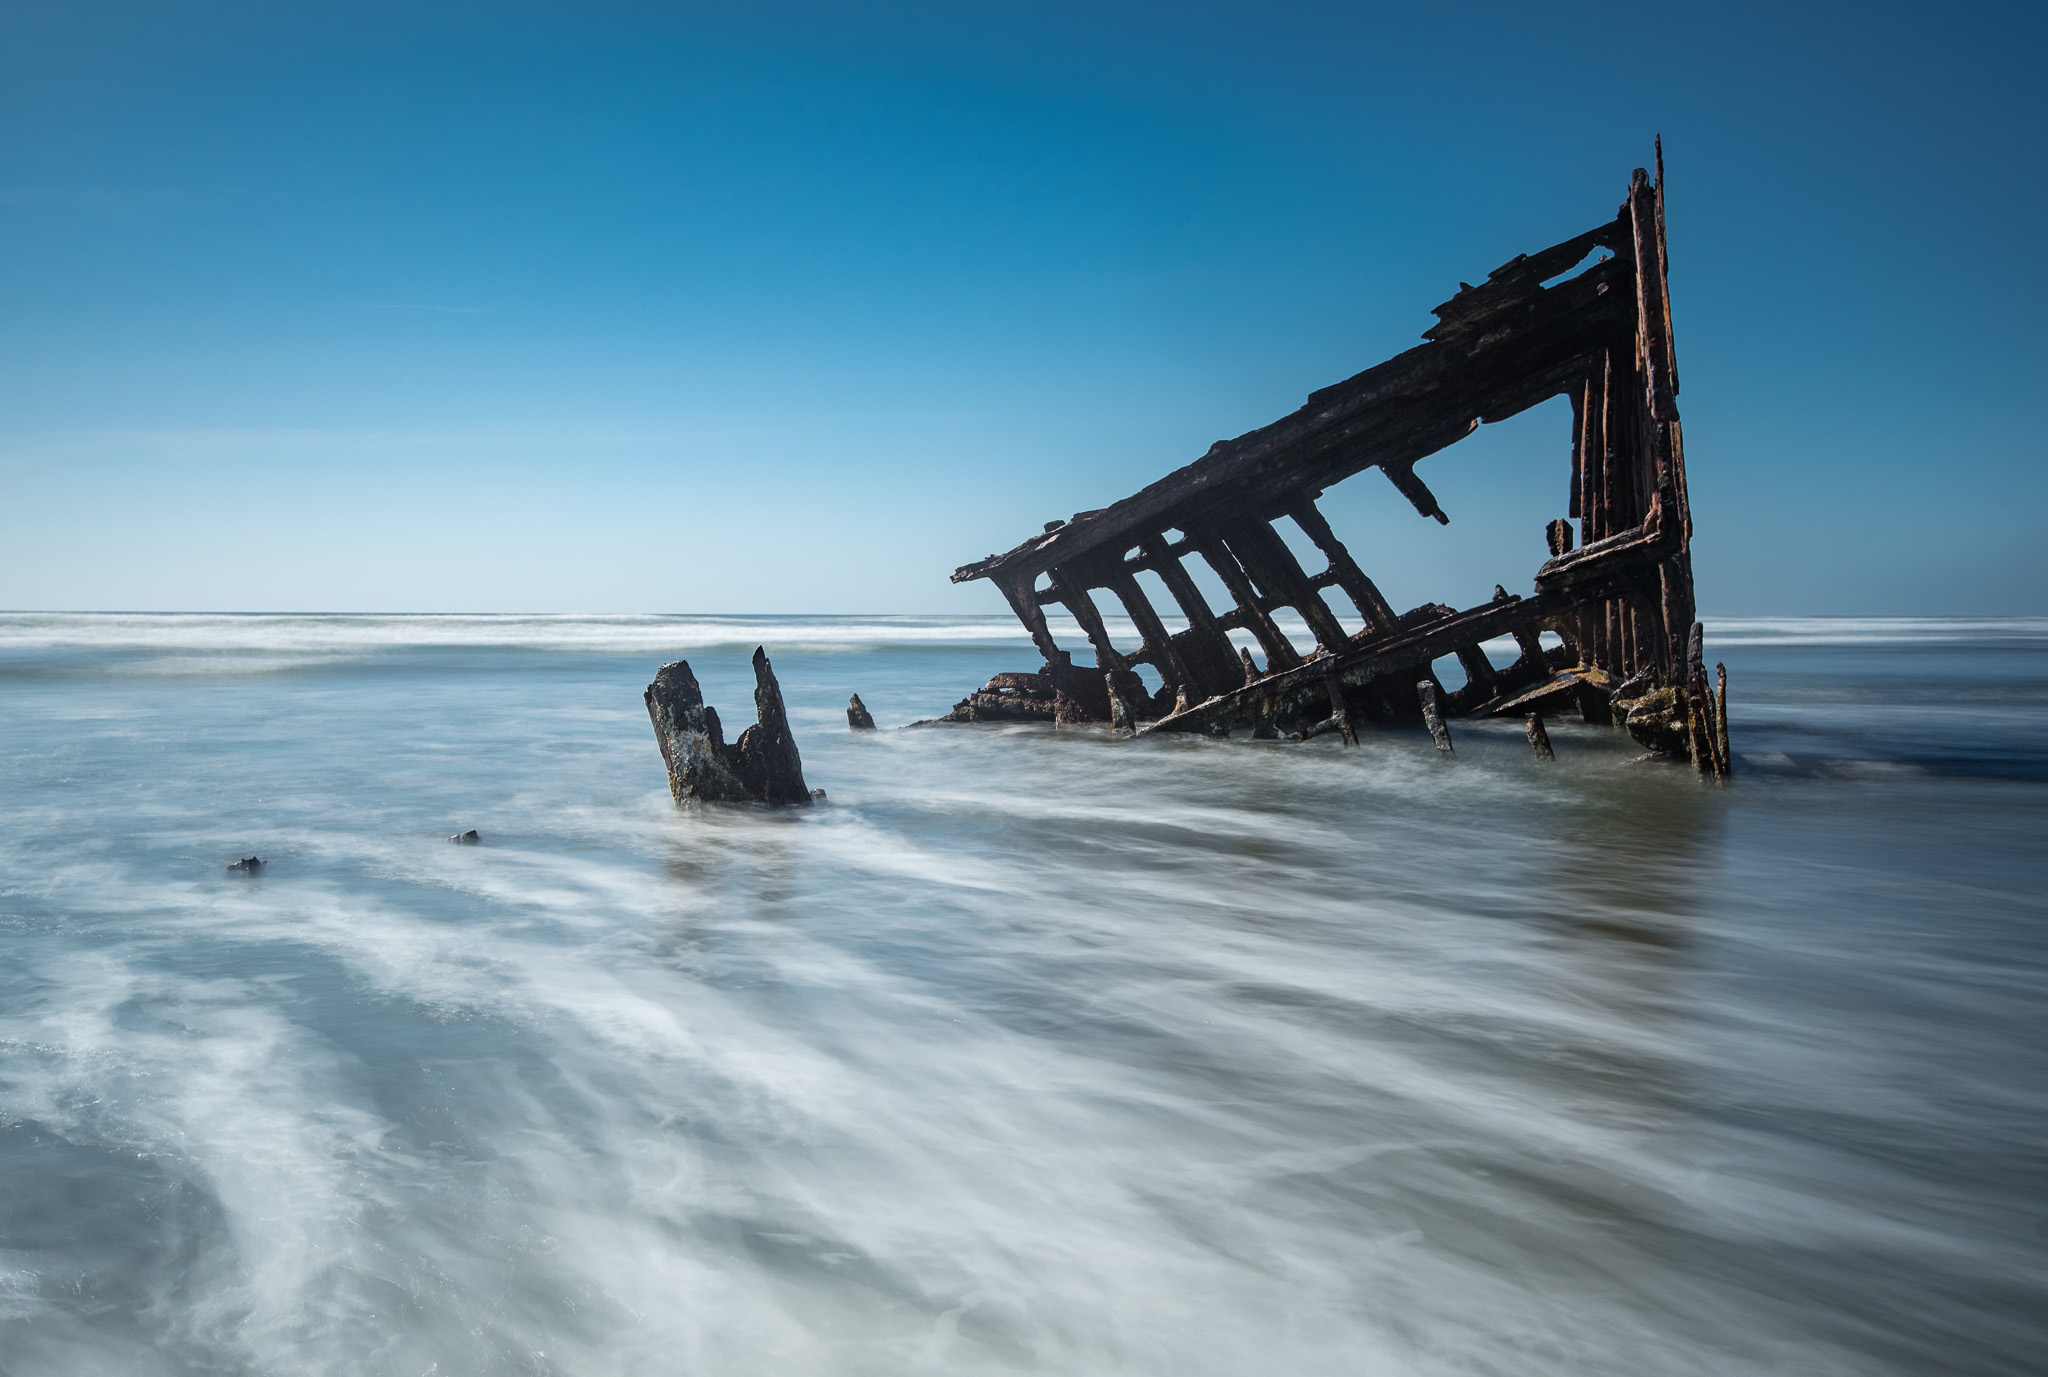 We headed further up the coast, stopping in to see this shipwreck at Fort Stevens State Park at the very Northern tip of Oregon, near Astoria. What this picture doesn't reveal is that the beach was packed with people all over the place, and we got pounded by waves to get the shots! We were regularly diving to save our gear from getting knocked down by waves.